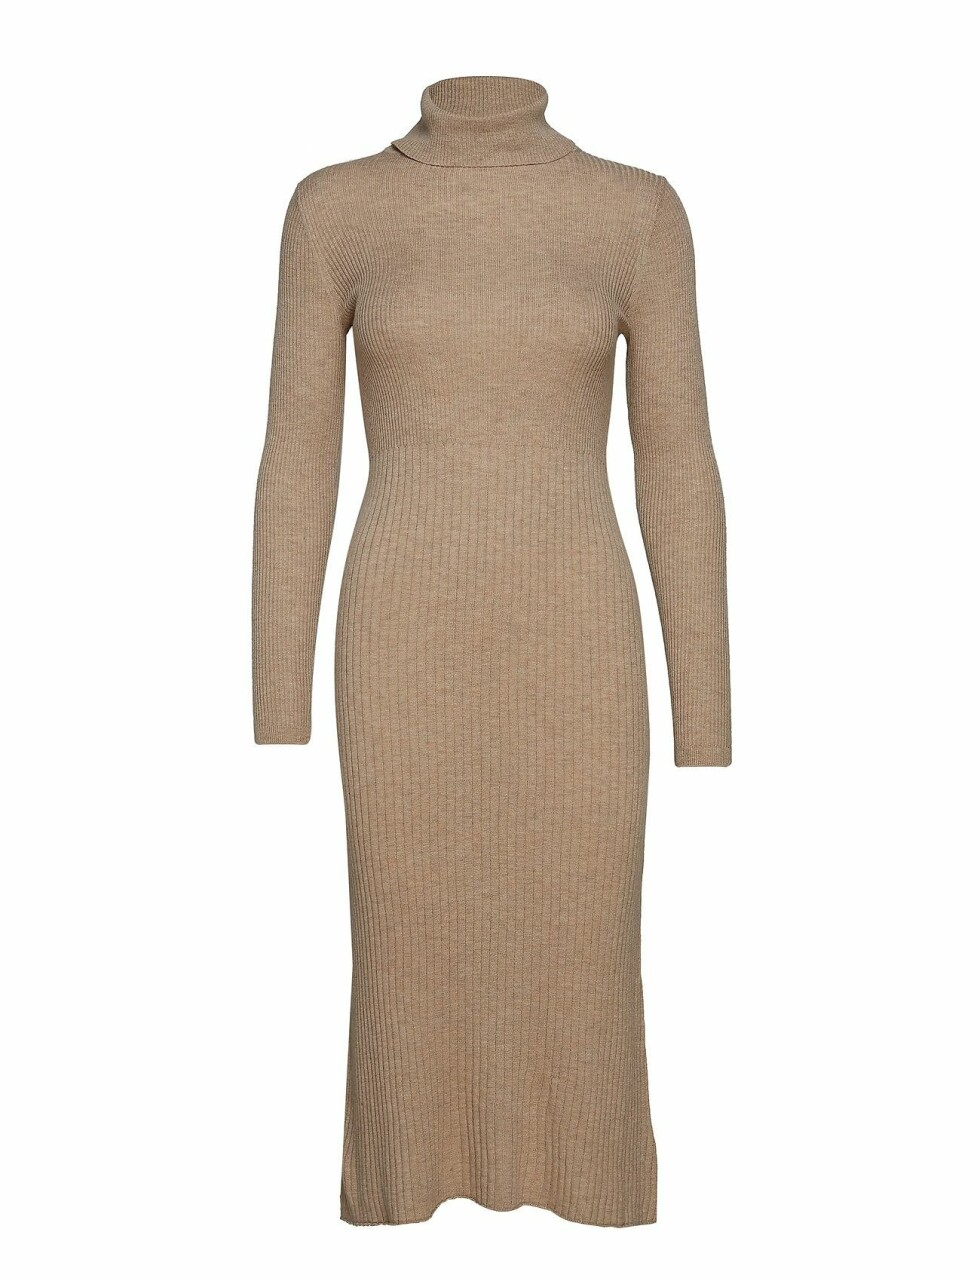 Kjole fra Mango |350,-| https://www.boozt.com/no/no/mango/ribbed-long-dress_19761844/19761854?path=67362&navId=67362&sNavId=67378&group=listing&position=1000000